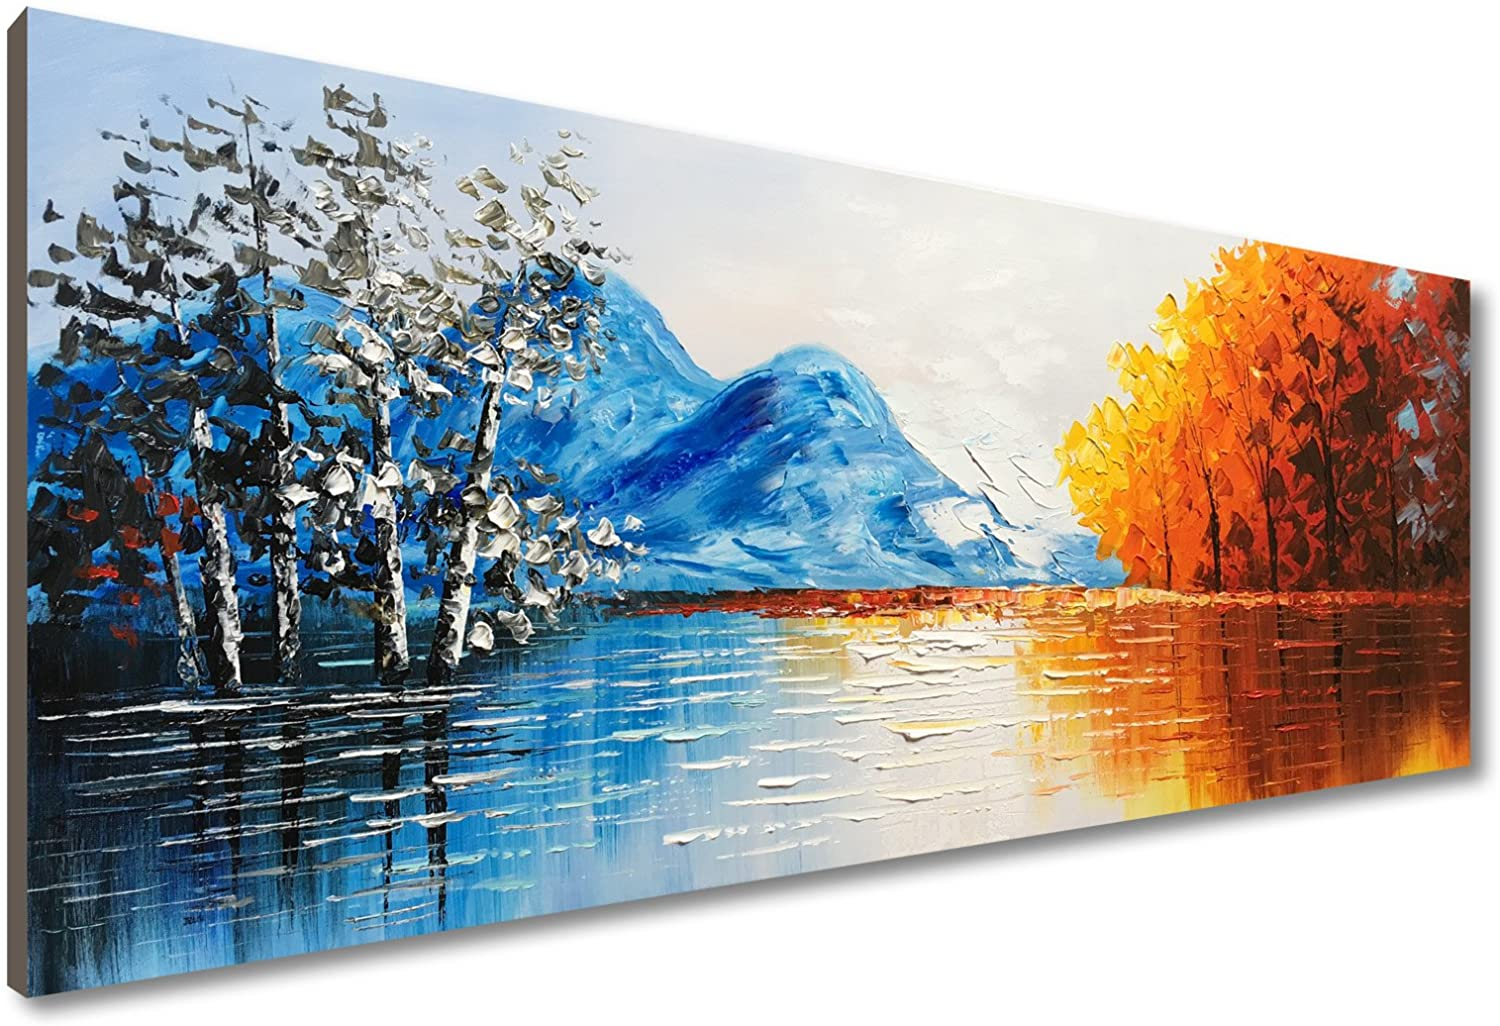 The Best Landscape Oil Paintings to Choose From